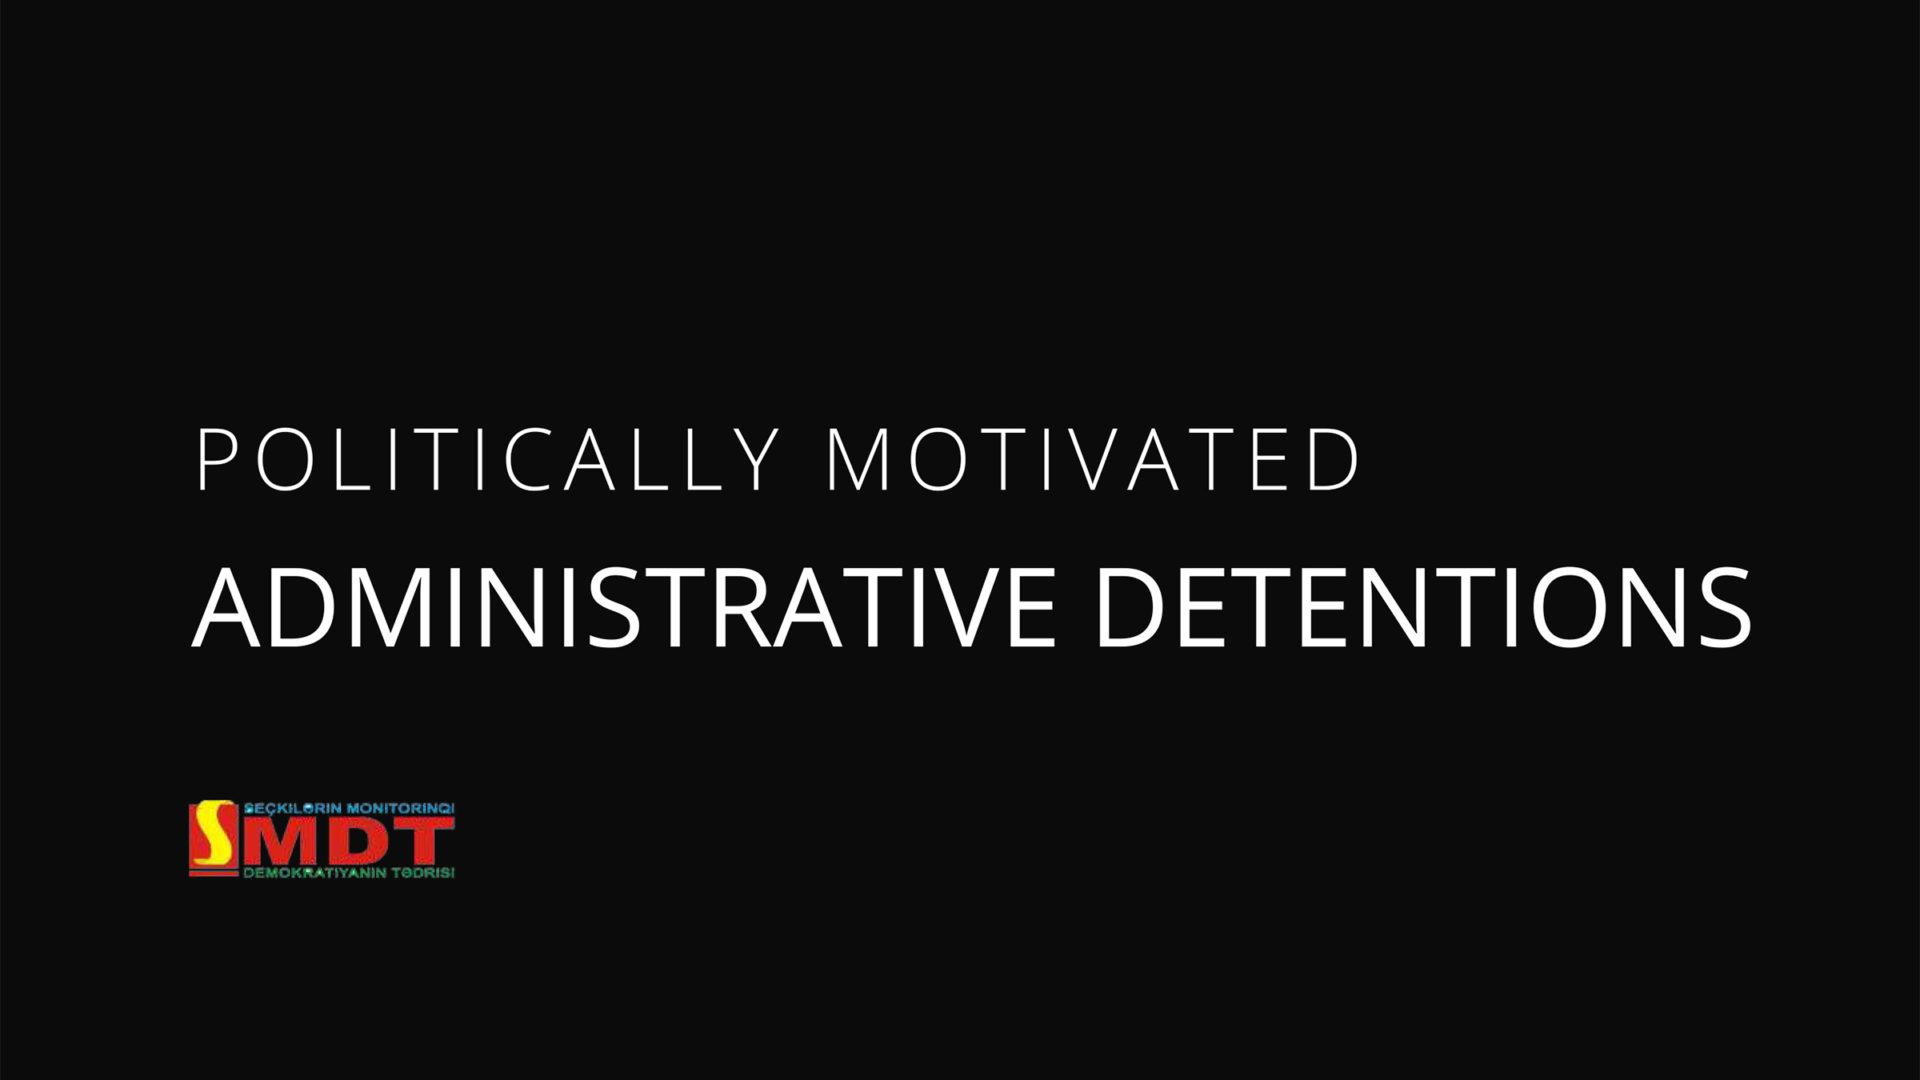 Politically Motivated Administrative Detentions